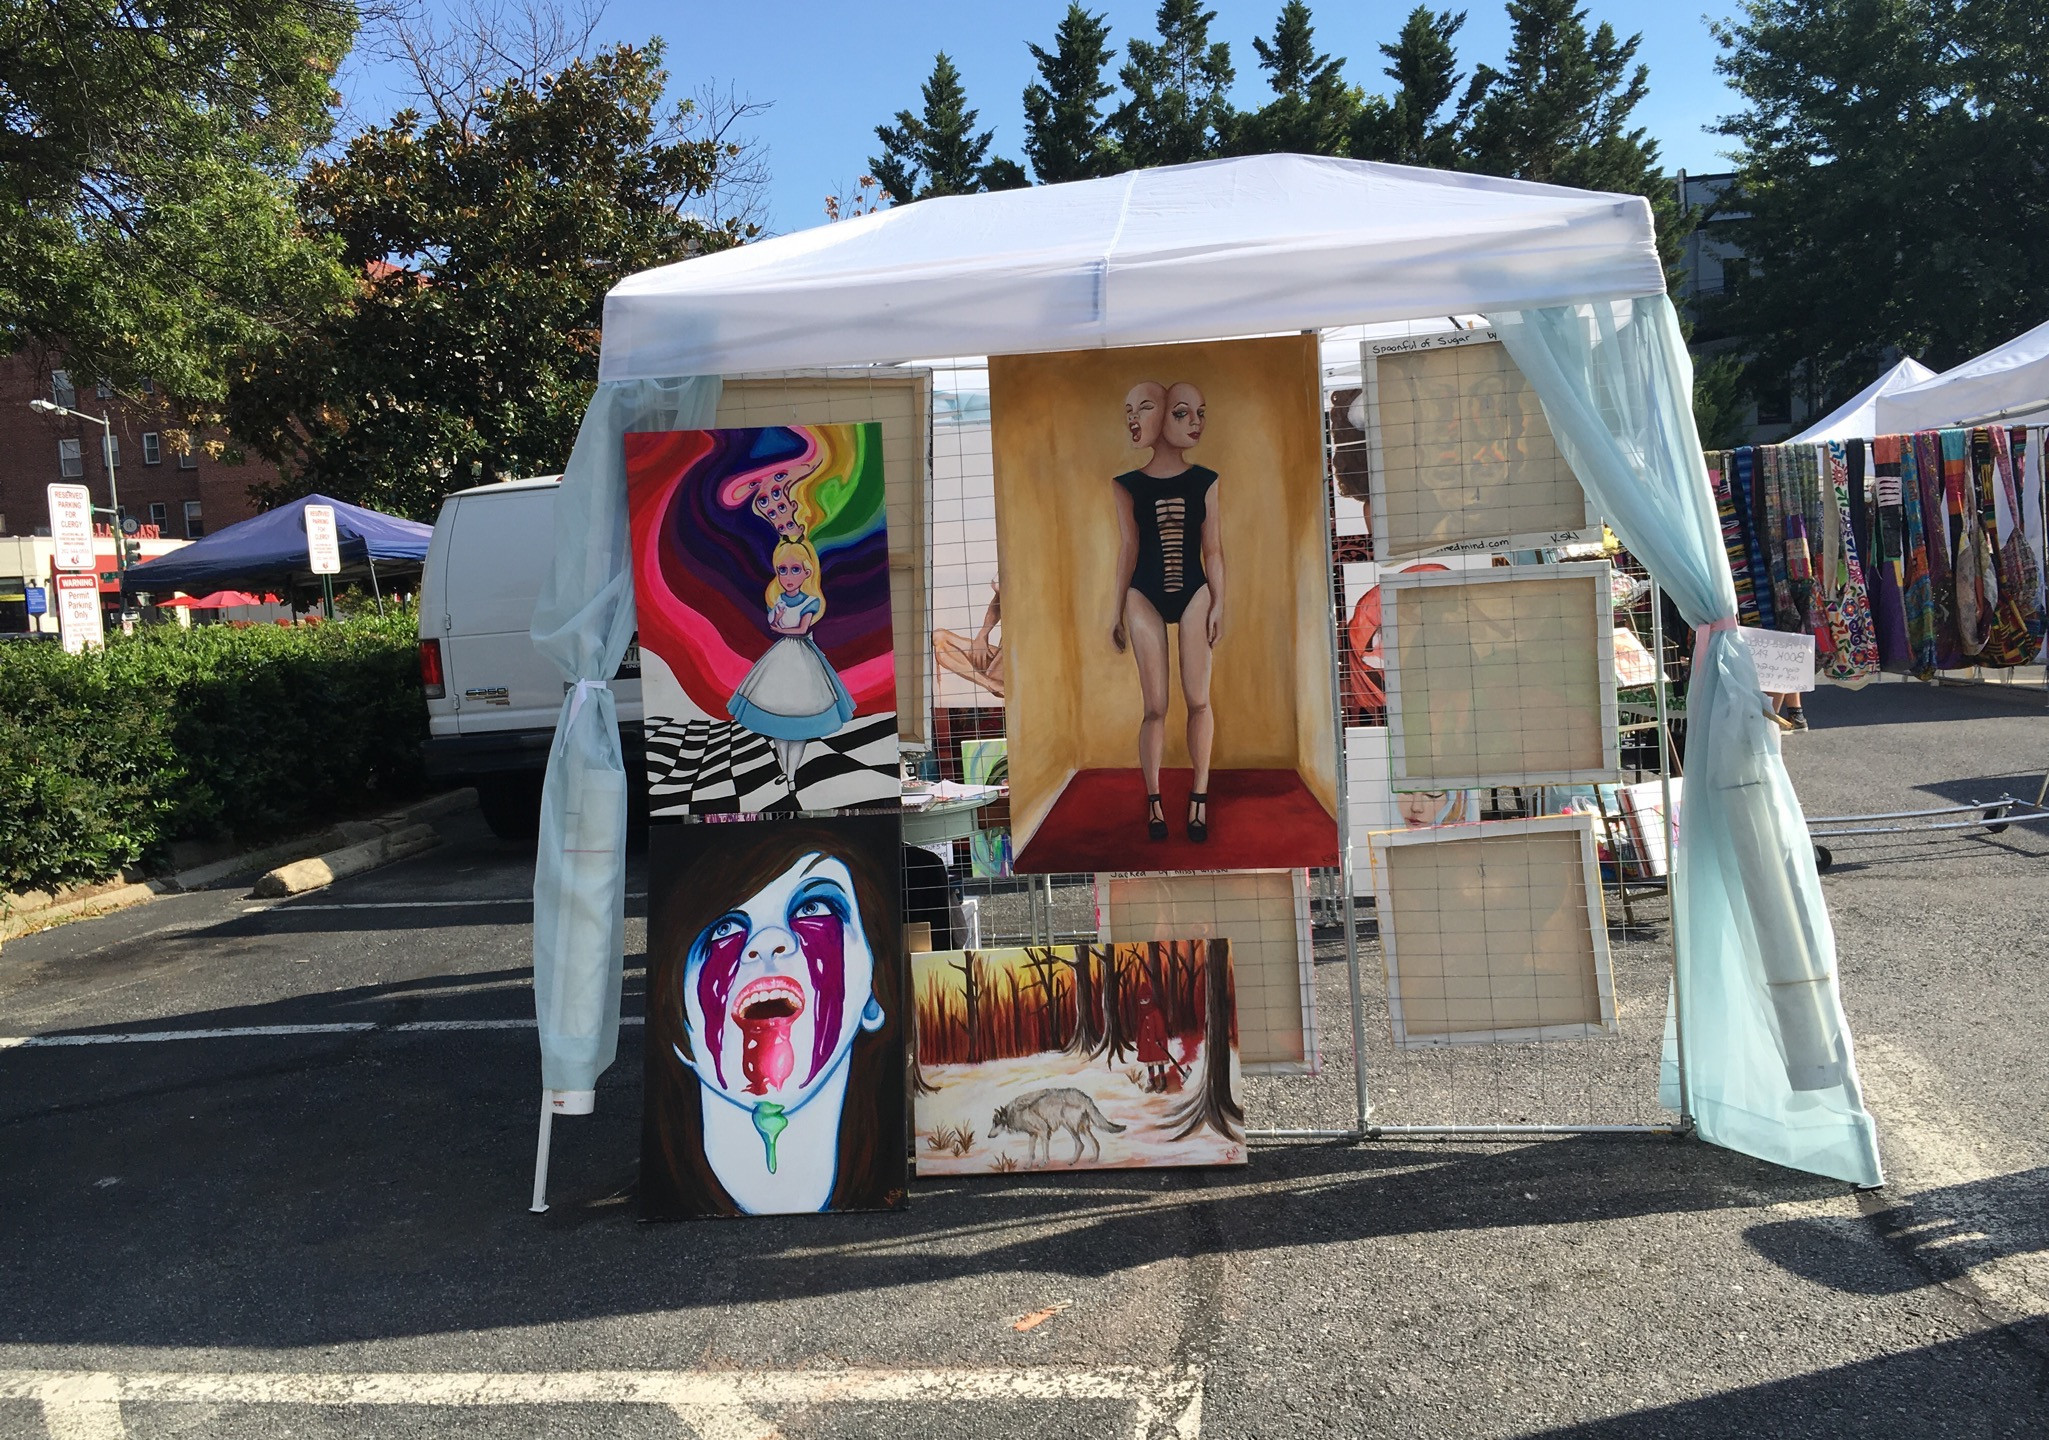 Krissy Whiski Art Show tent craft fair booth art rave dc fine paintings trade booth